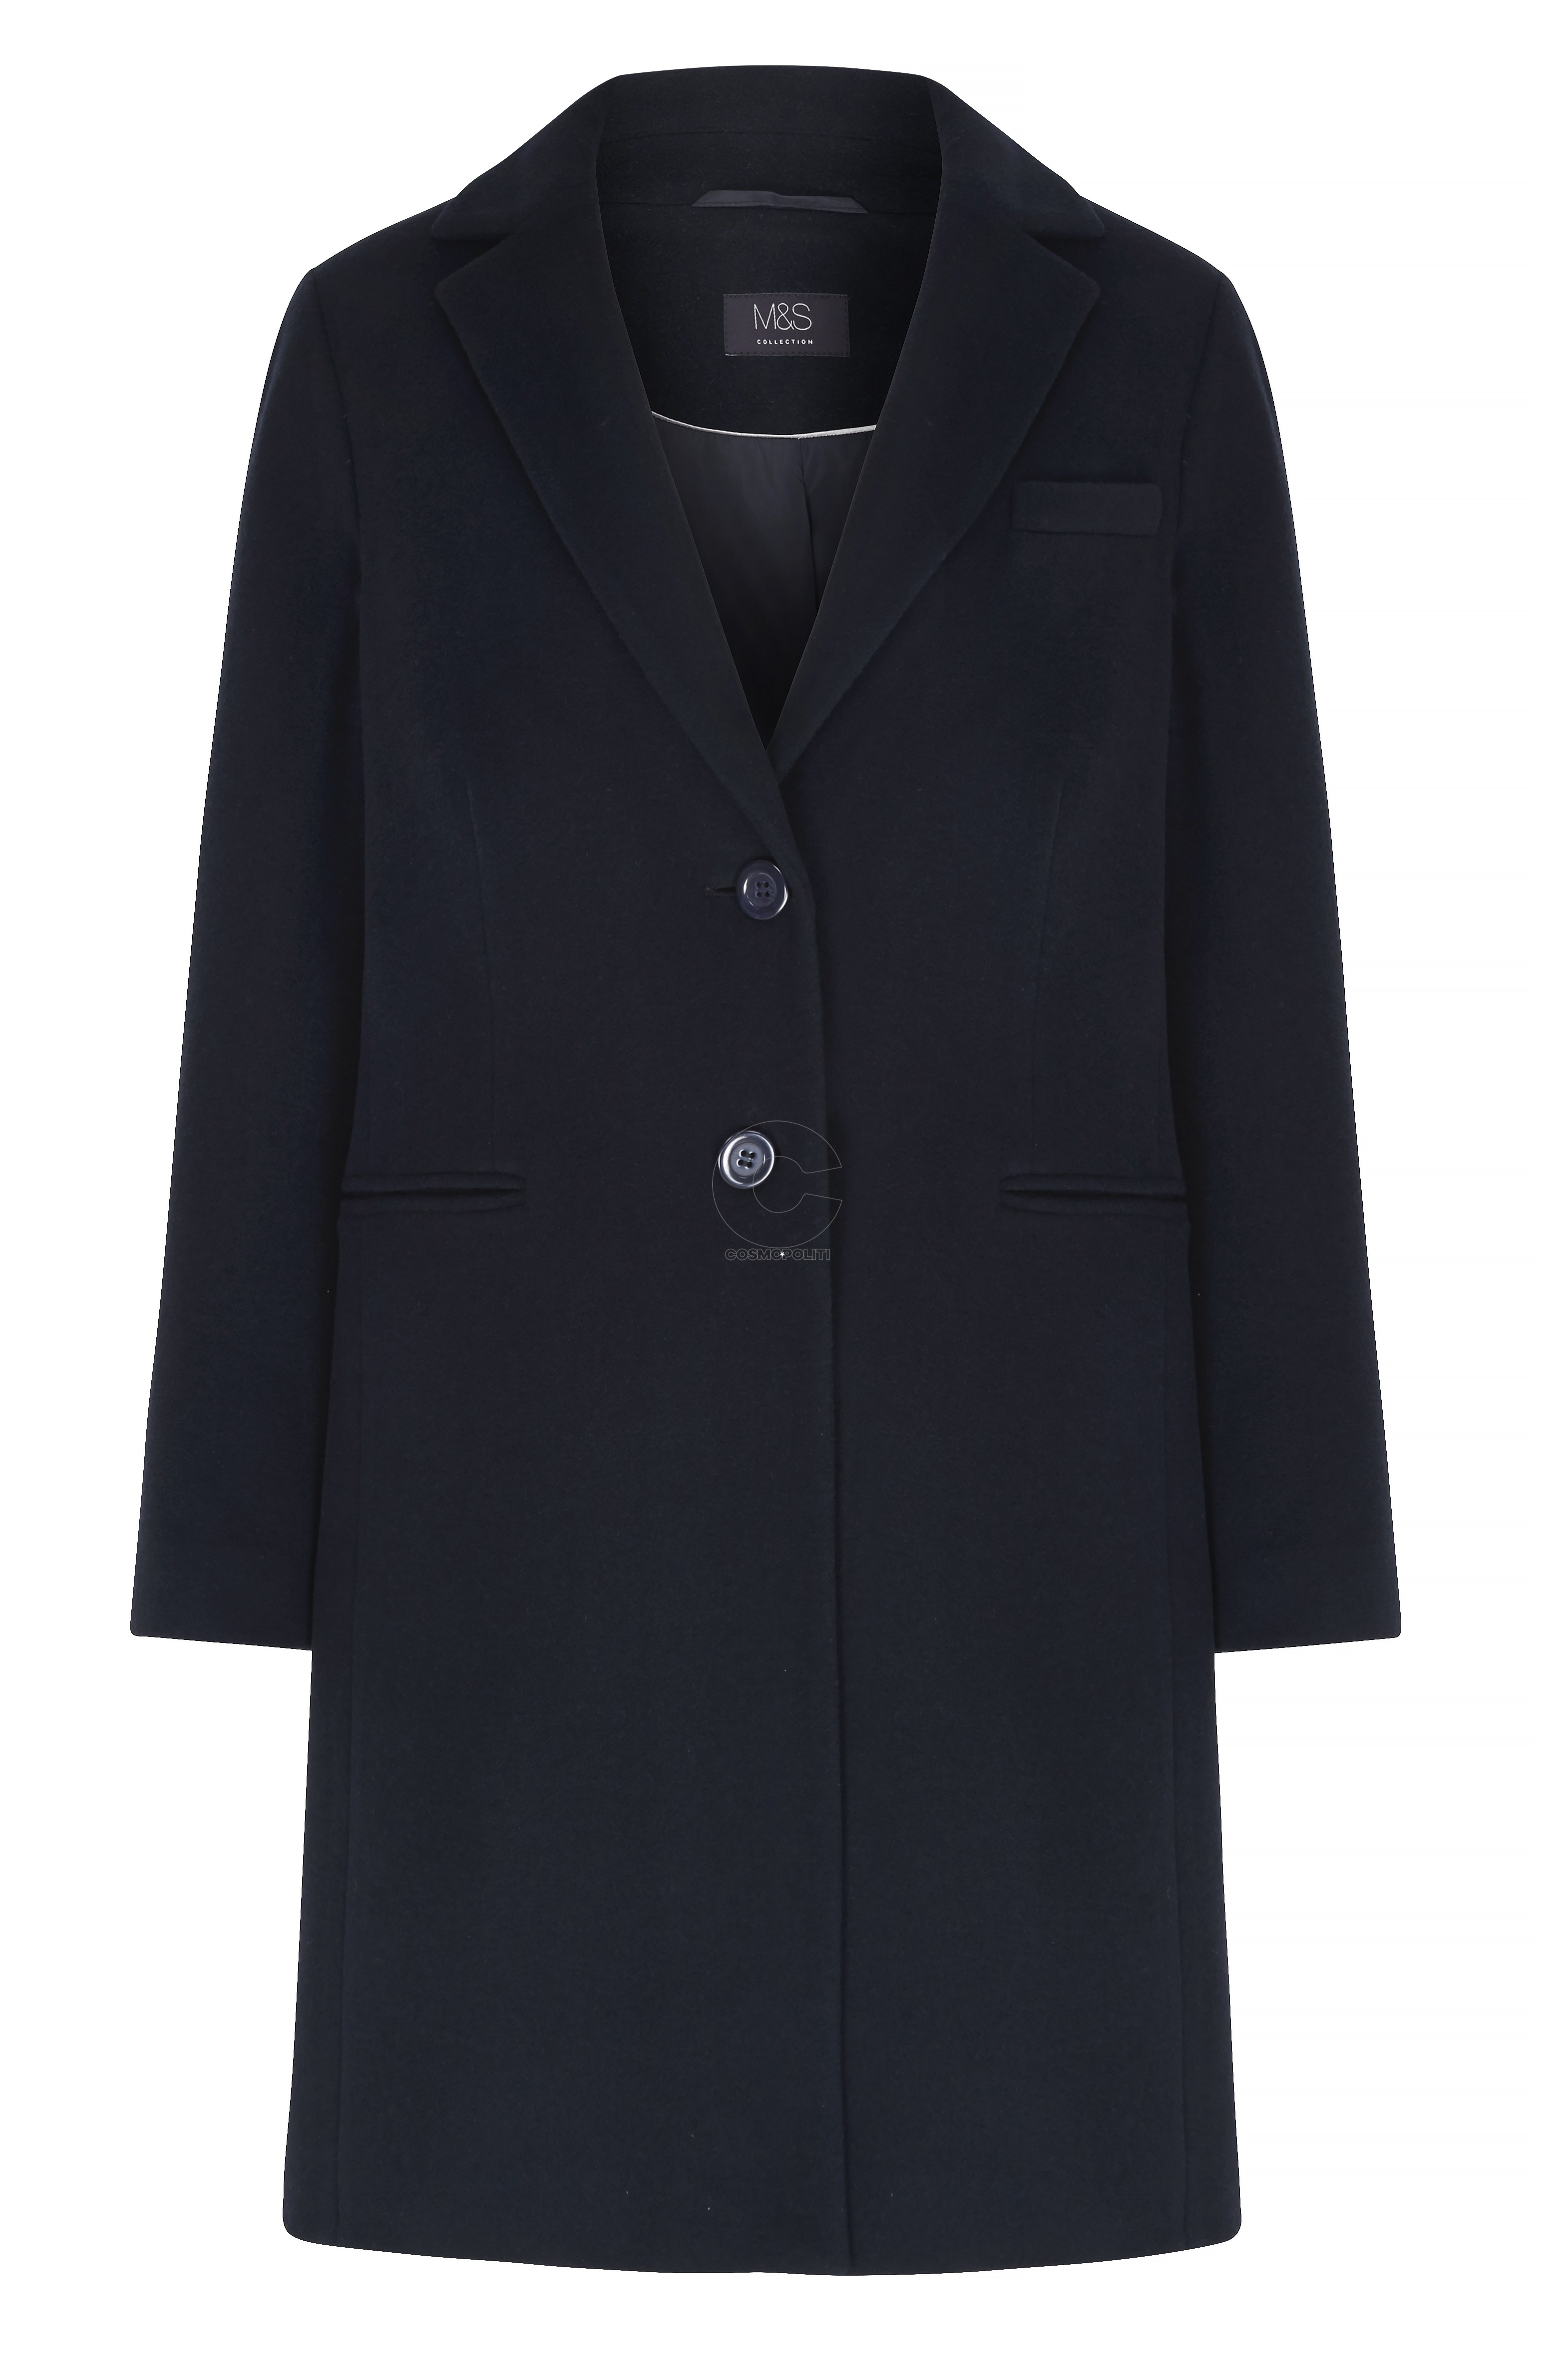 M&S COLLECTION NAVY CASHMERE BLEND COAT